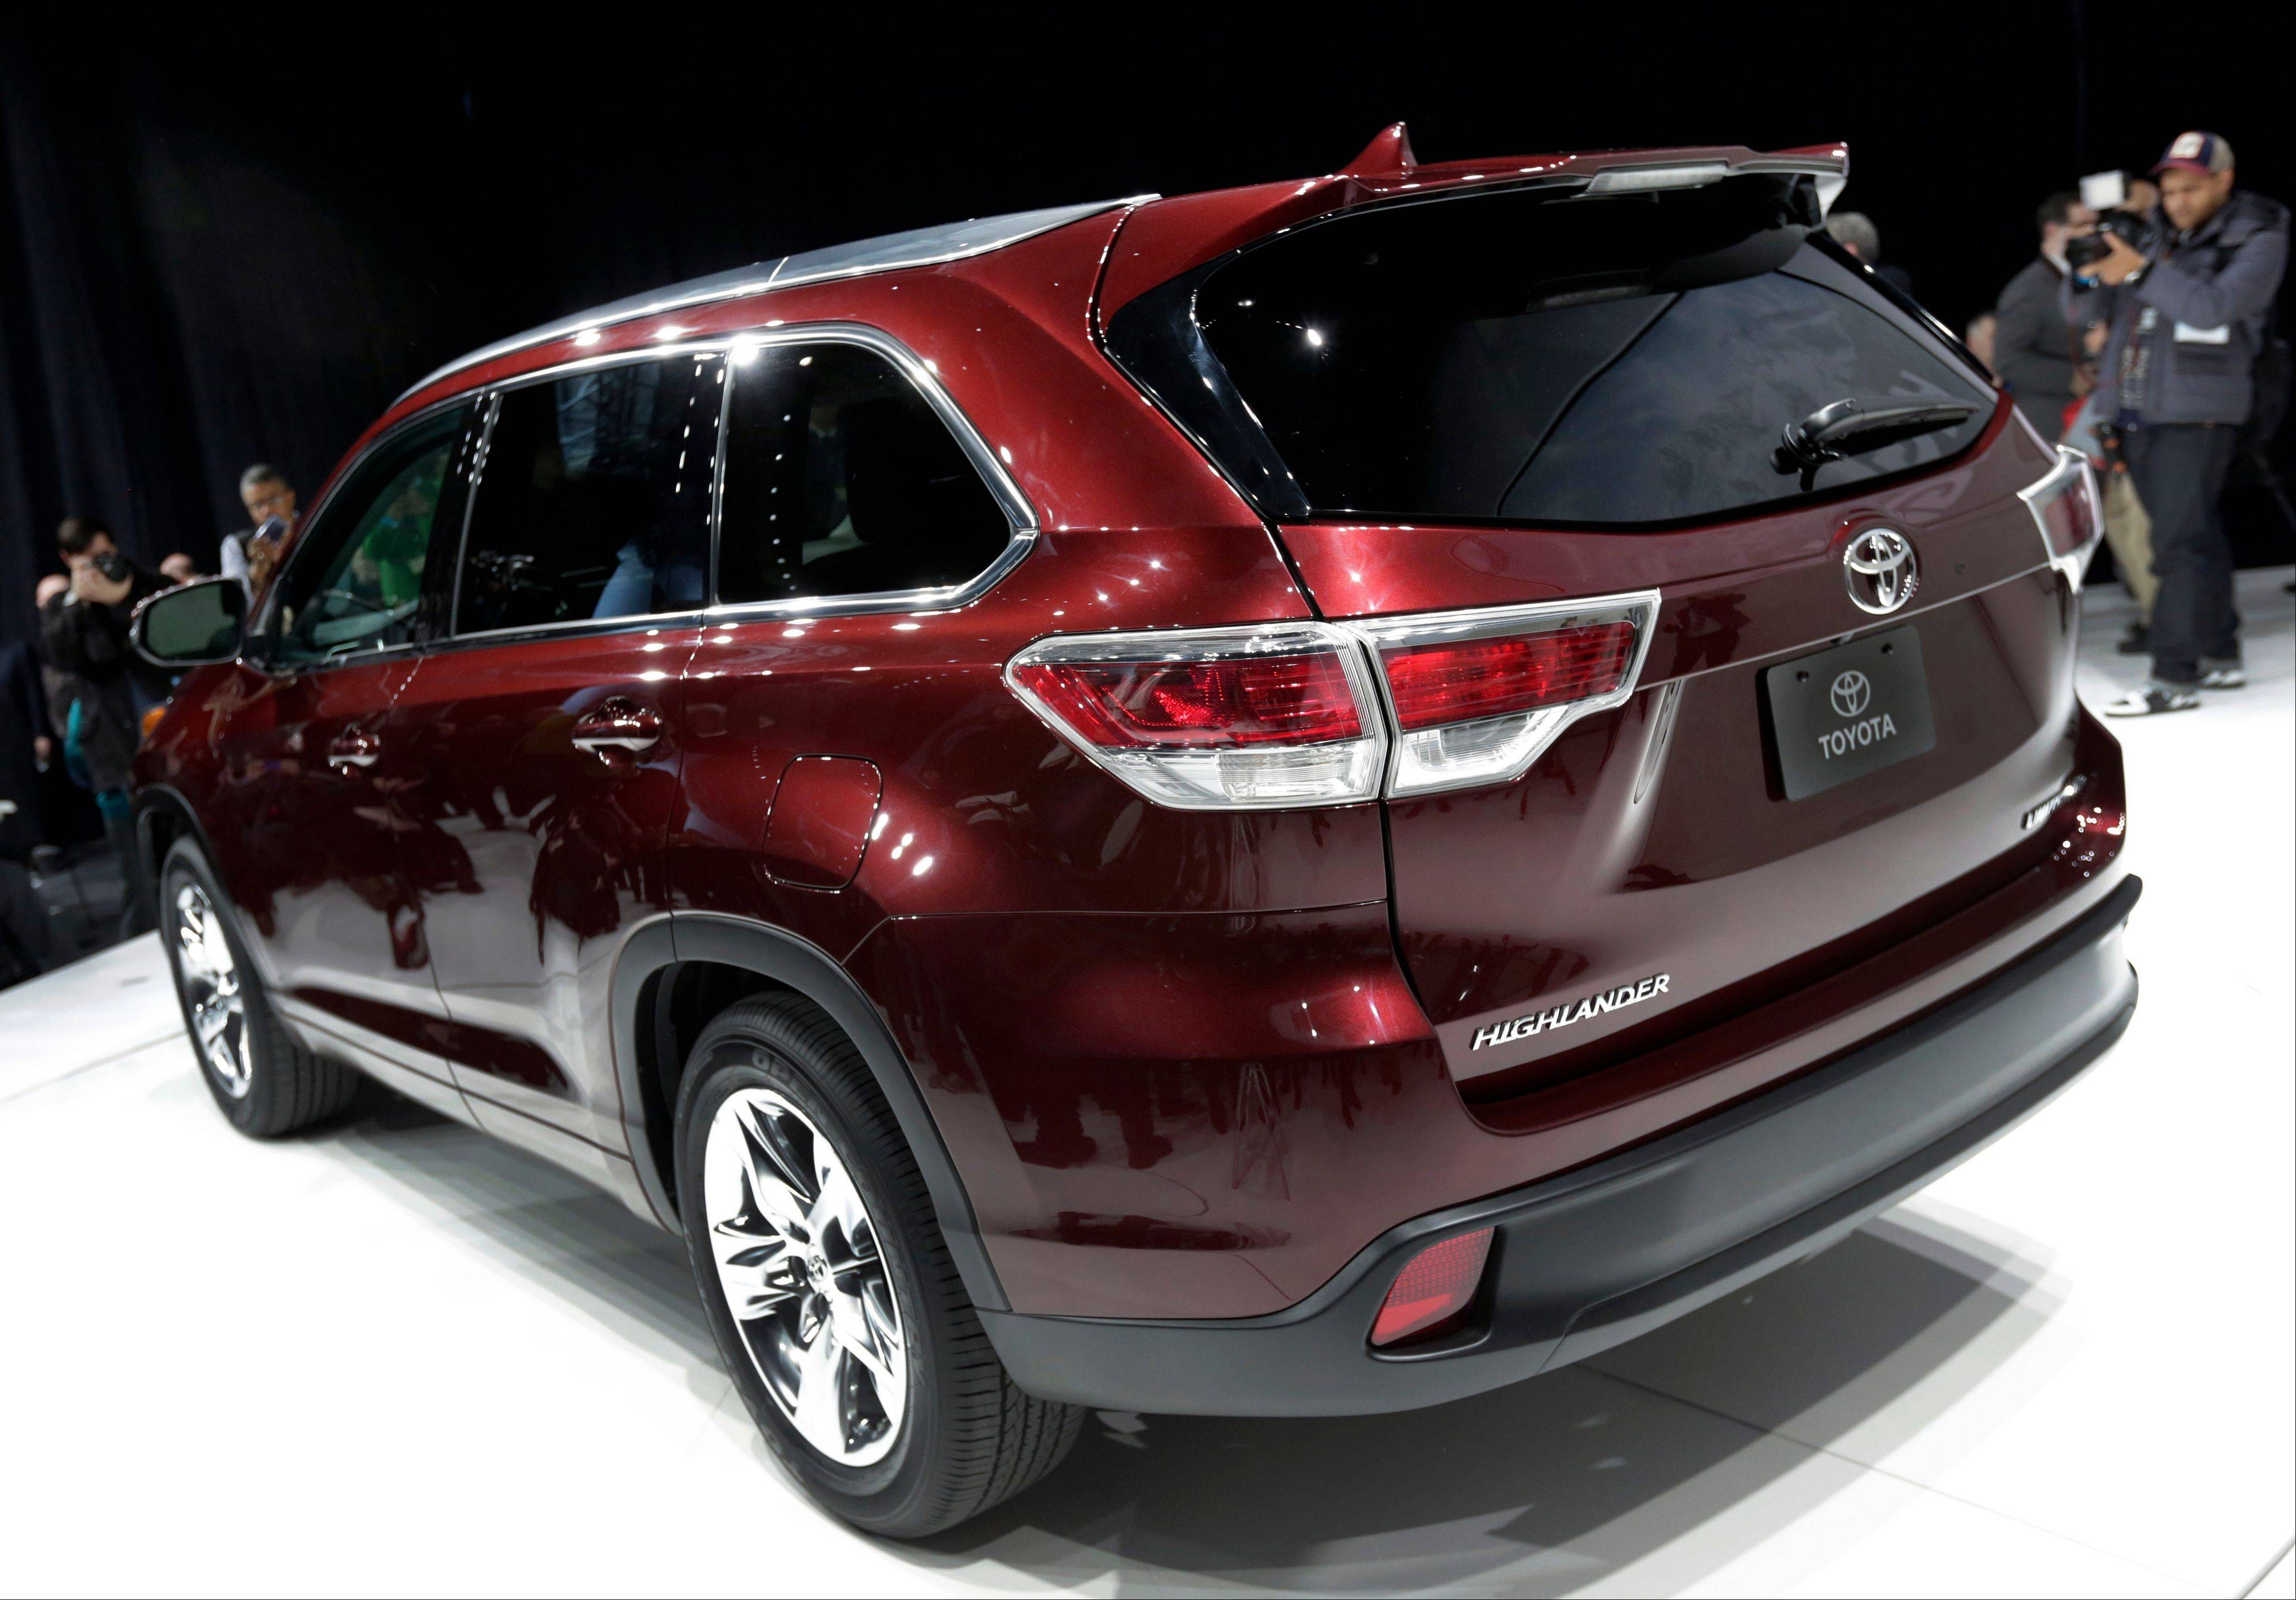 The 2014 Toyota Highlander is presented at the New York International Auto Show, in New York's Javits Center.